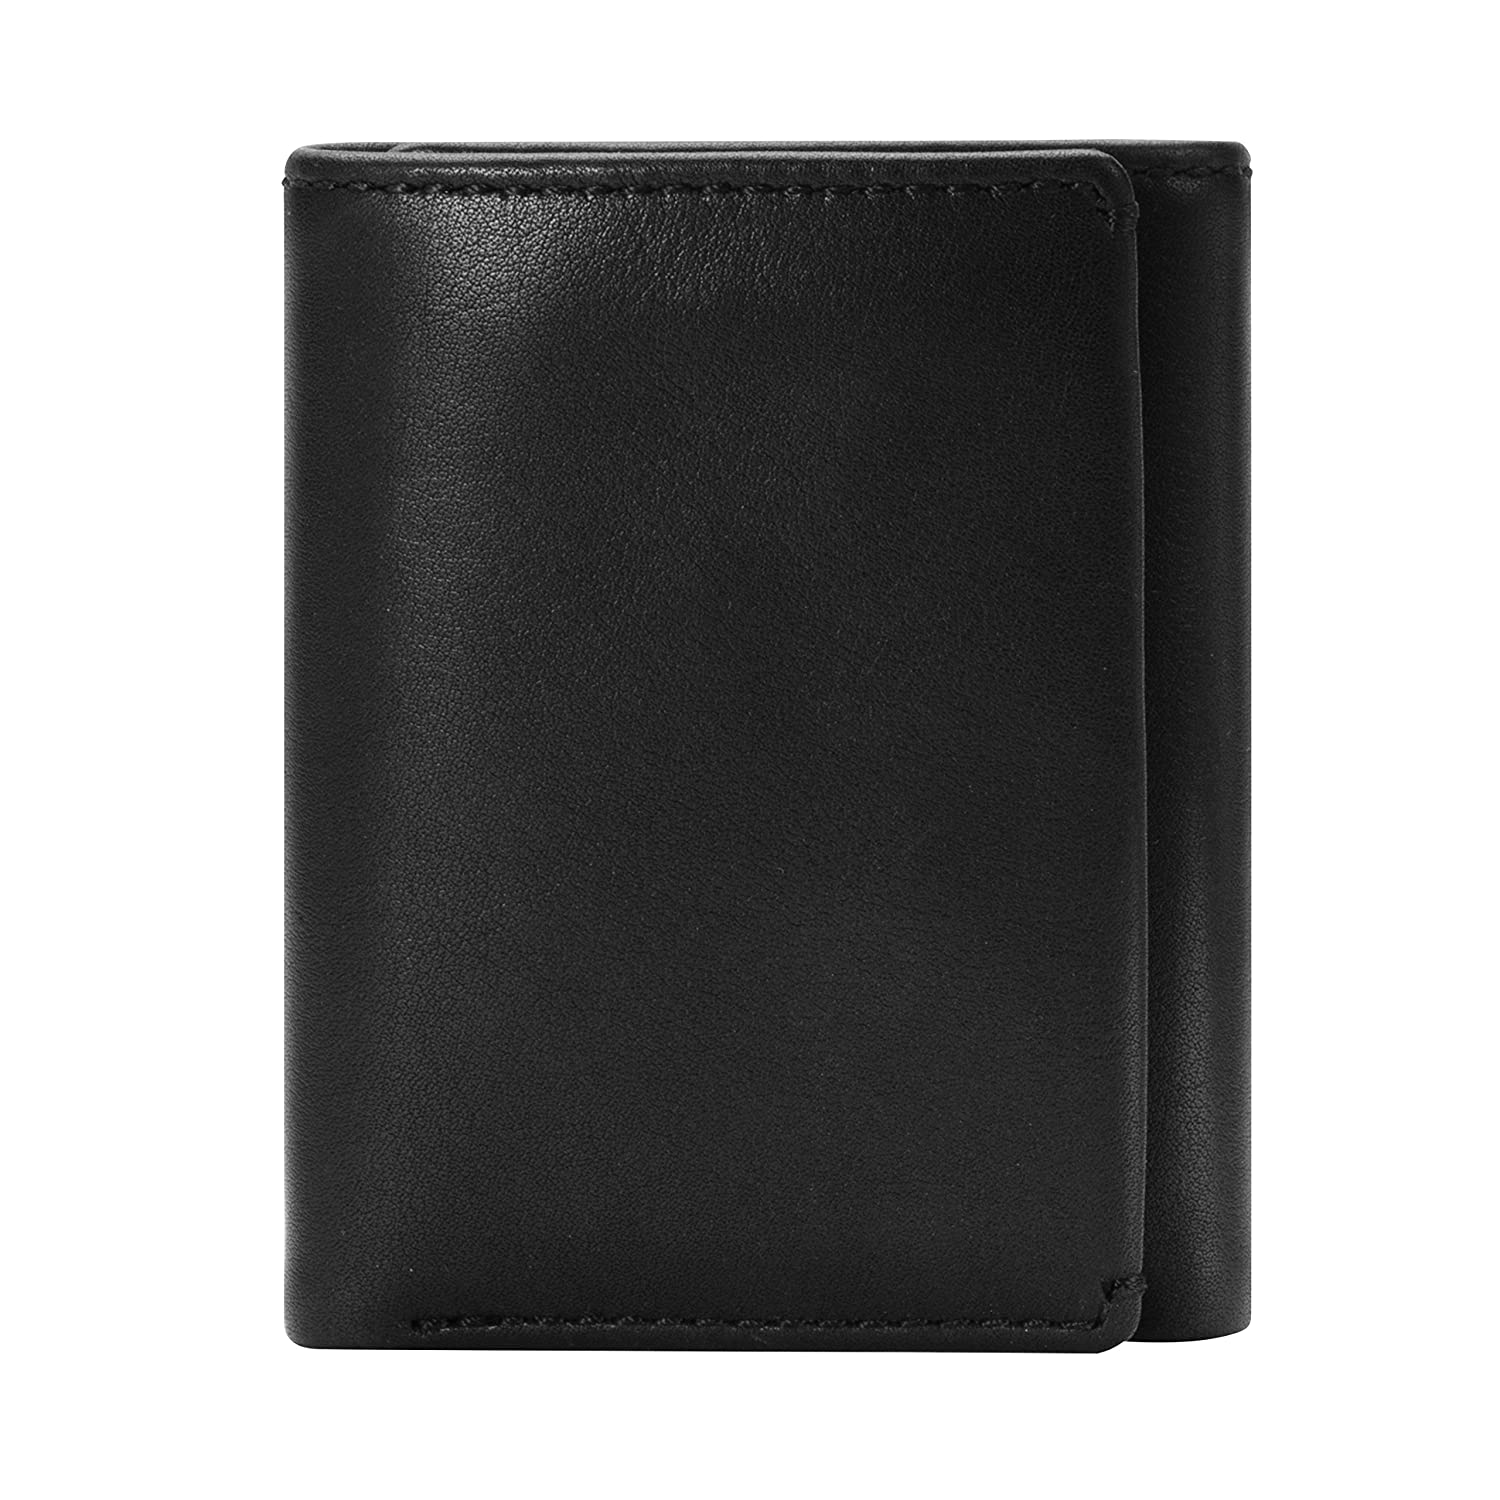 c7a6afbaa604 Eastwood Nappa TRIFOLD Wallet-Men's Leather Trifold Wallet-Divided Bill  Compartment & ID Window at Amazon Men's Clothing store: